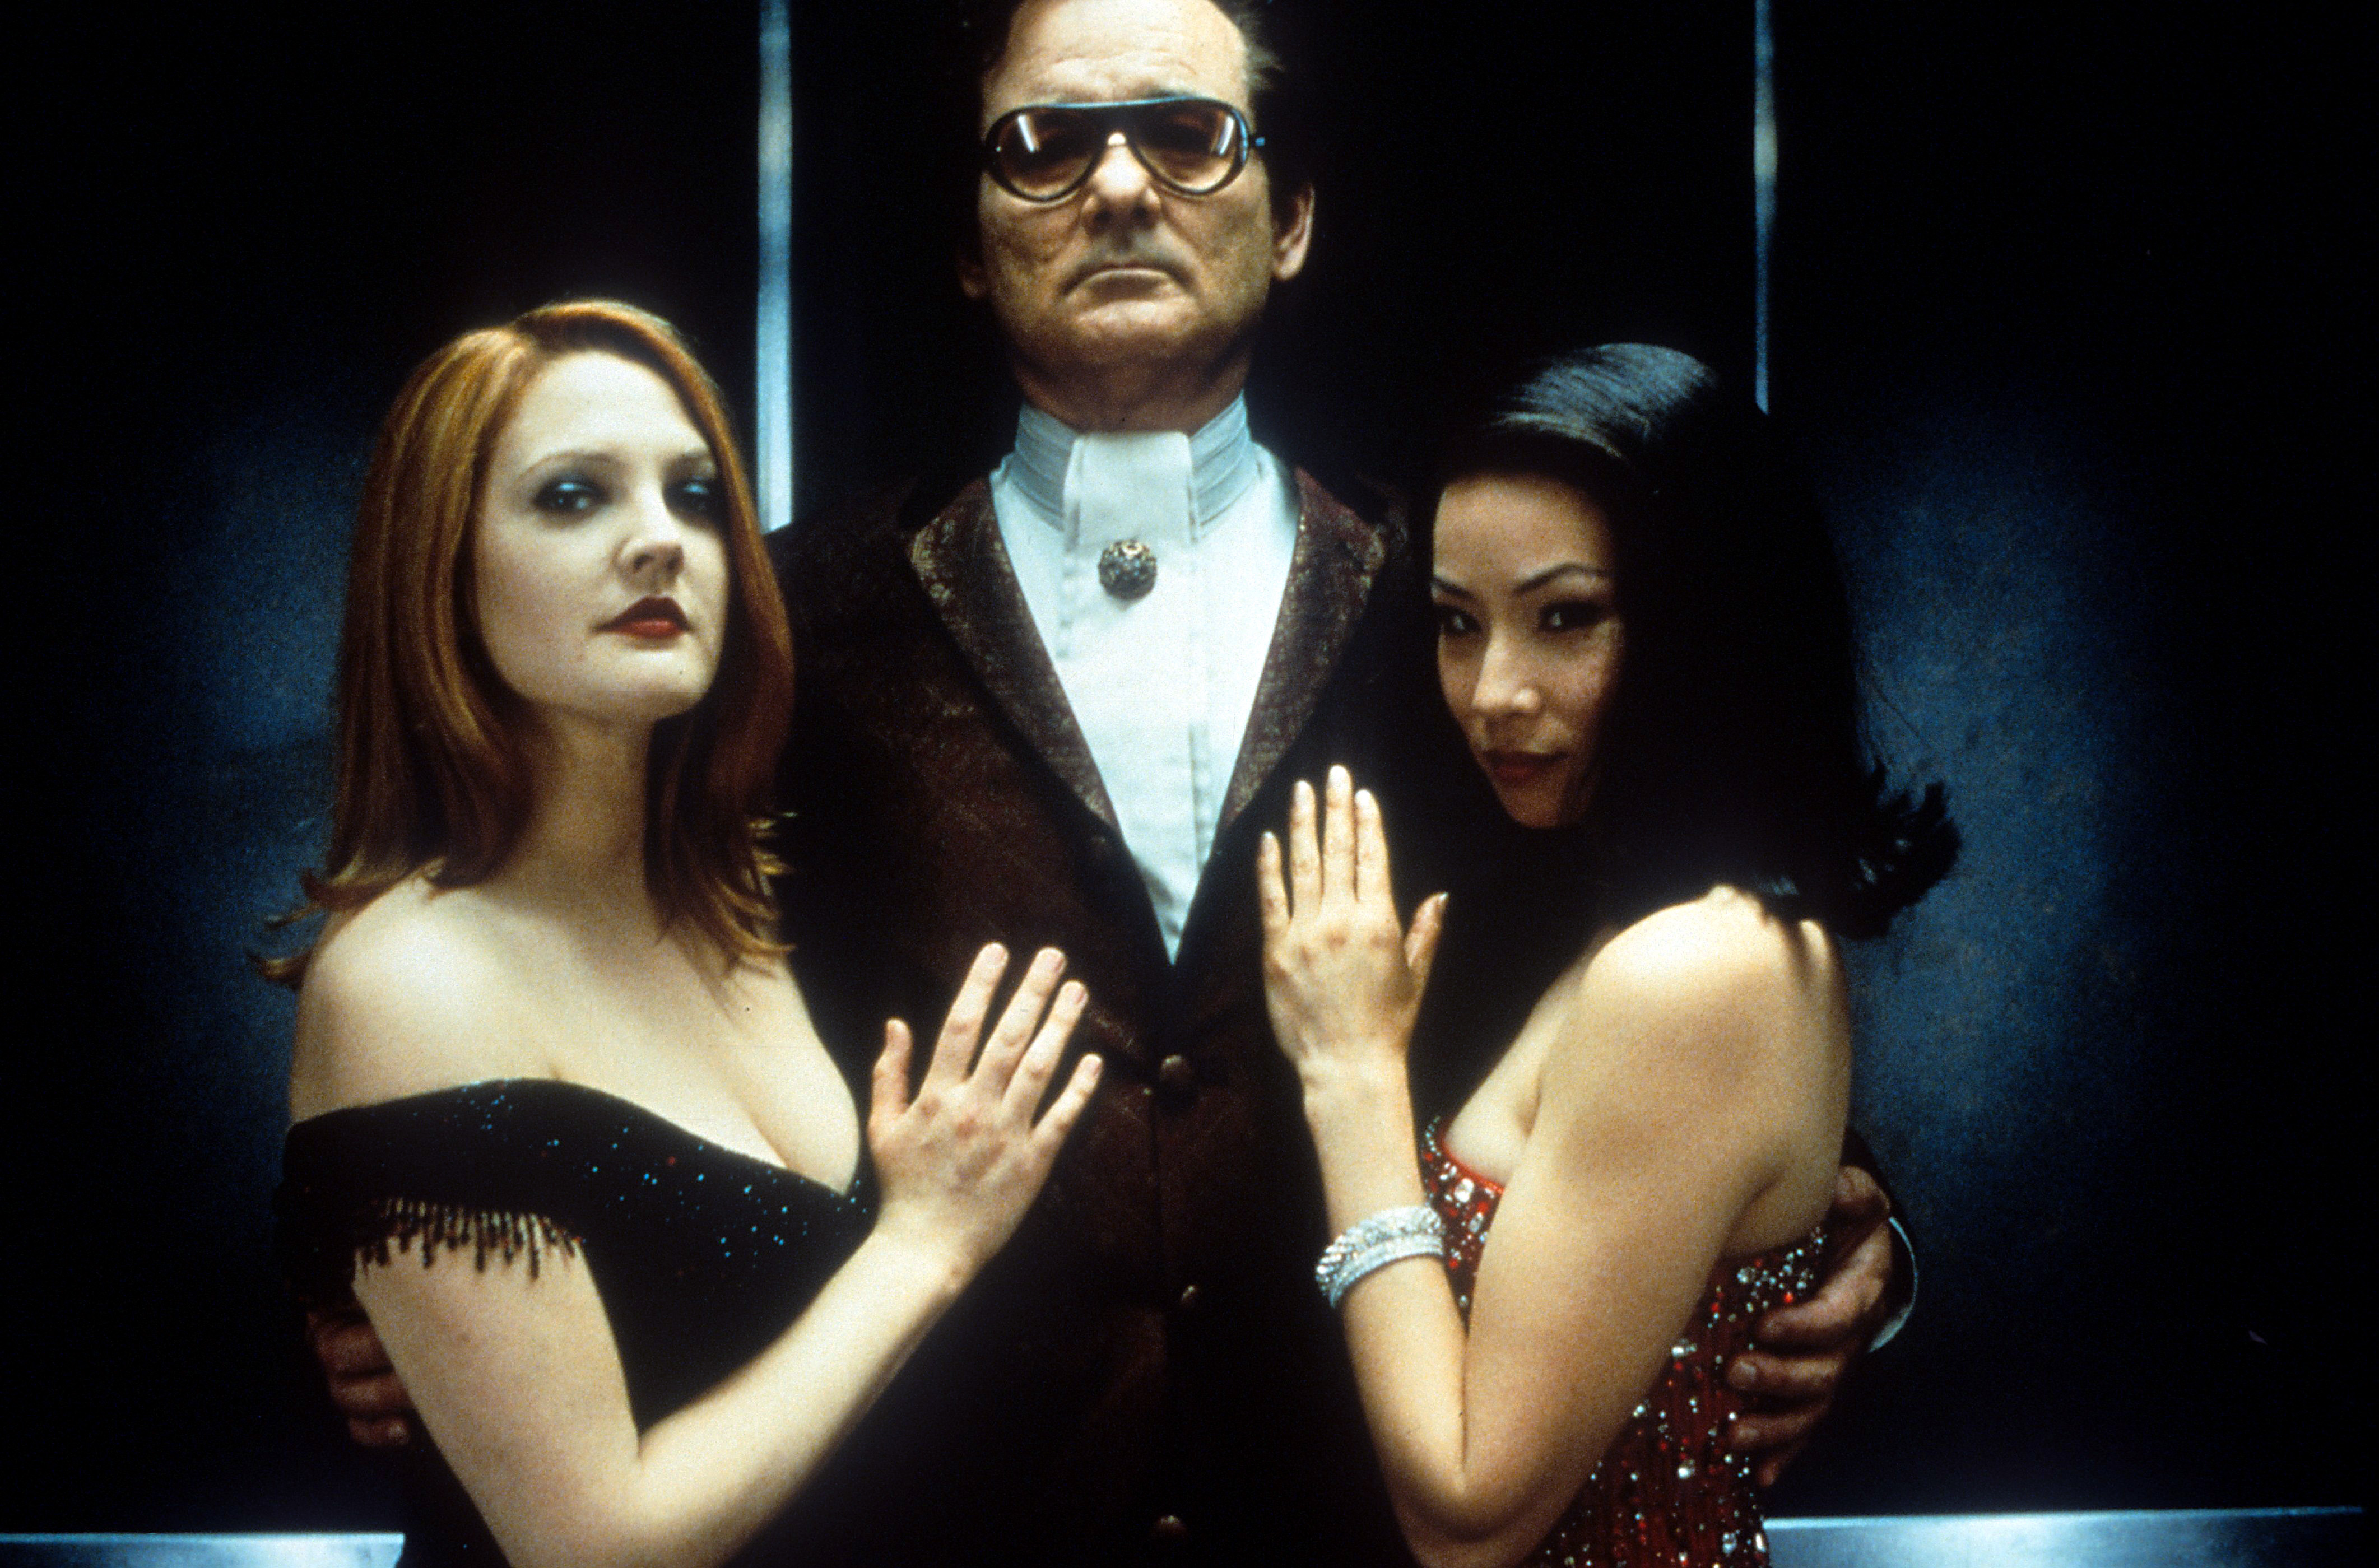 Drew Barrymore, Bill Murray, and Lucy Liu in Charlie's Angels (2000)